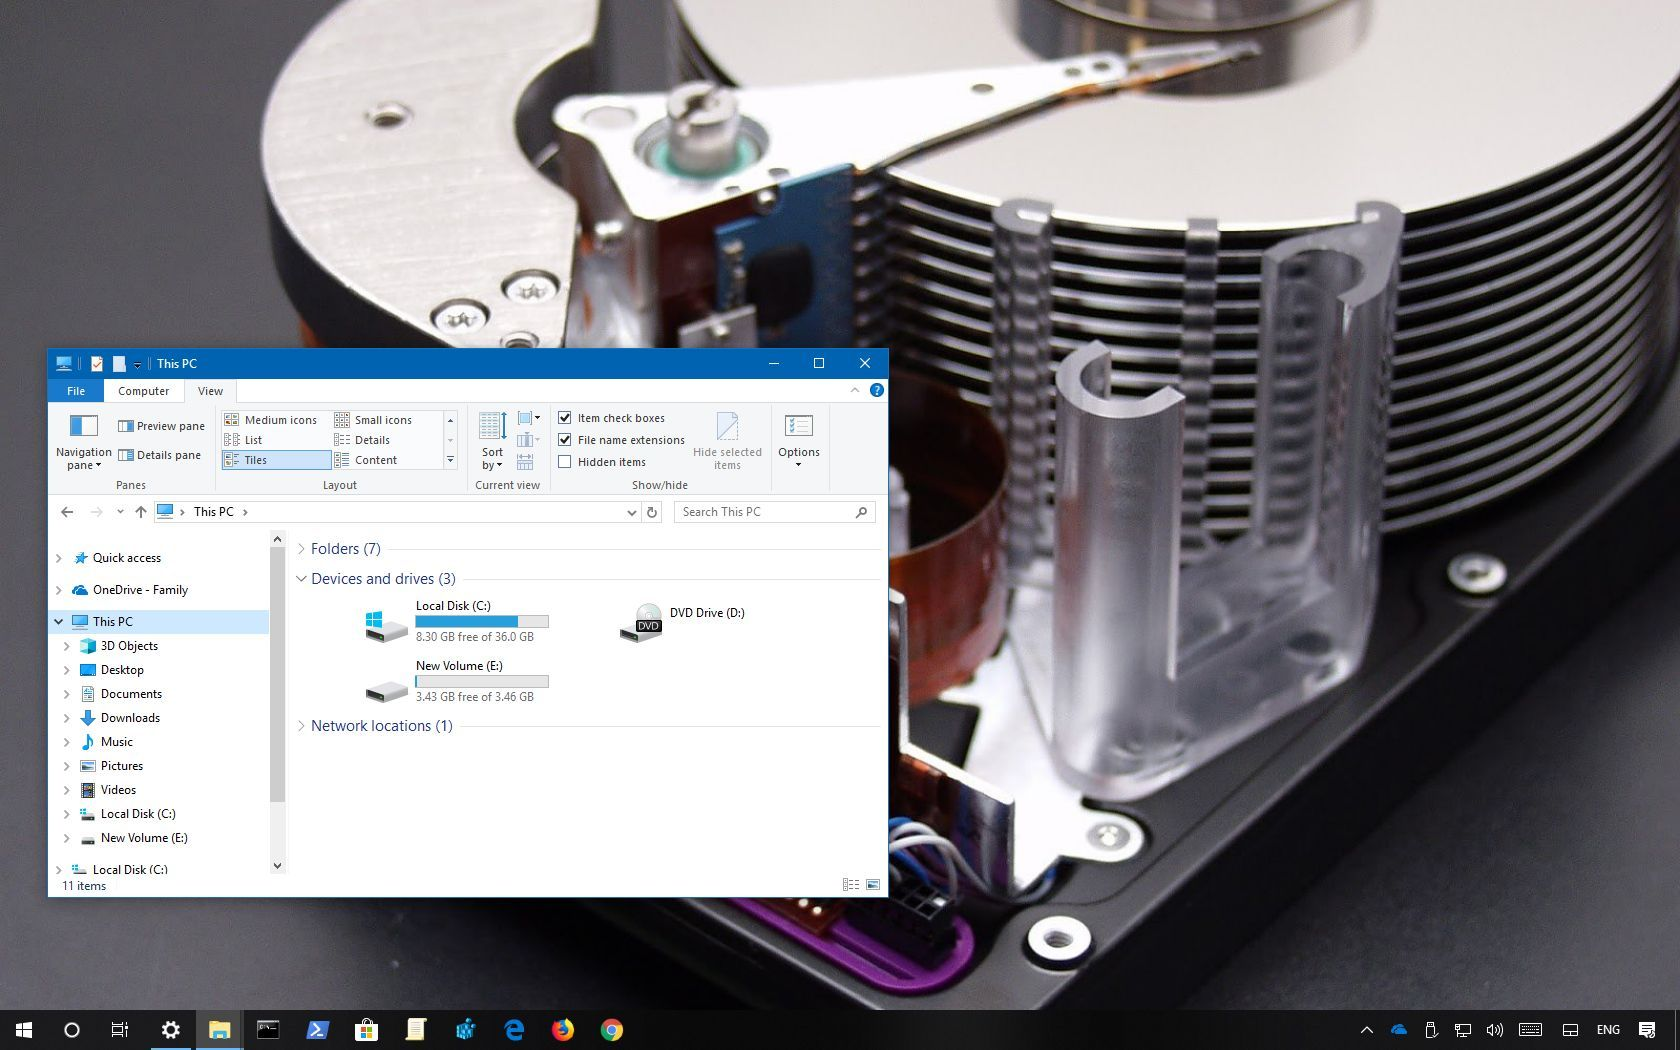 Hard drive for computer and NAS